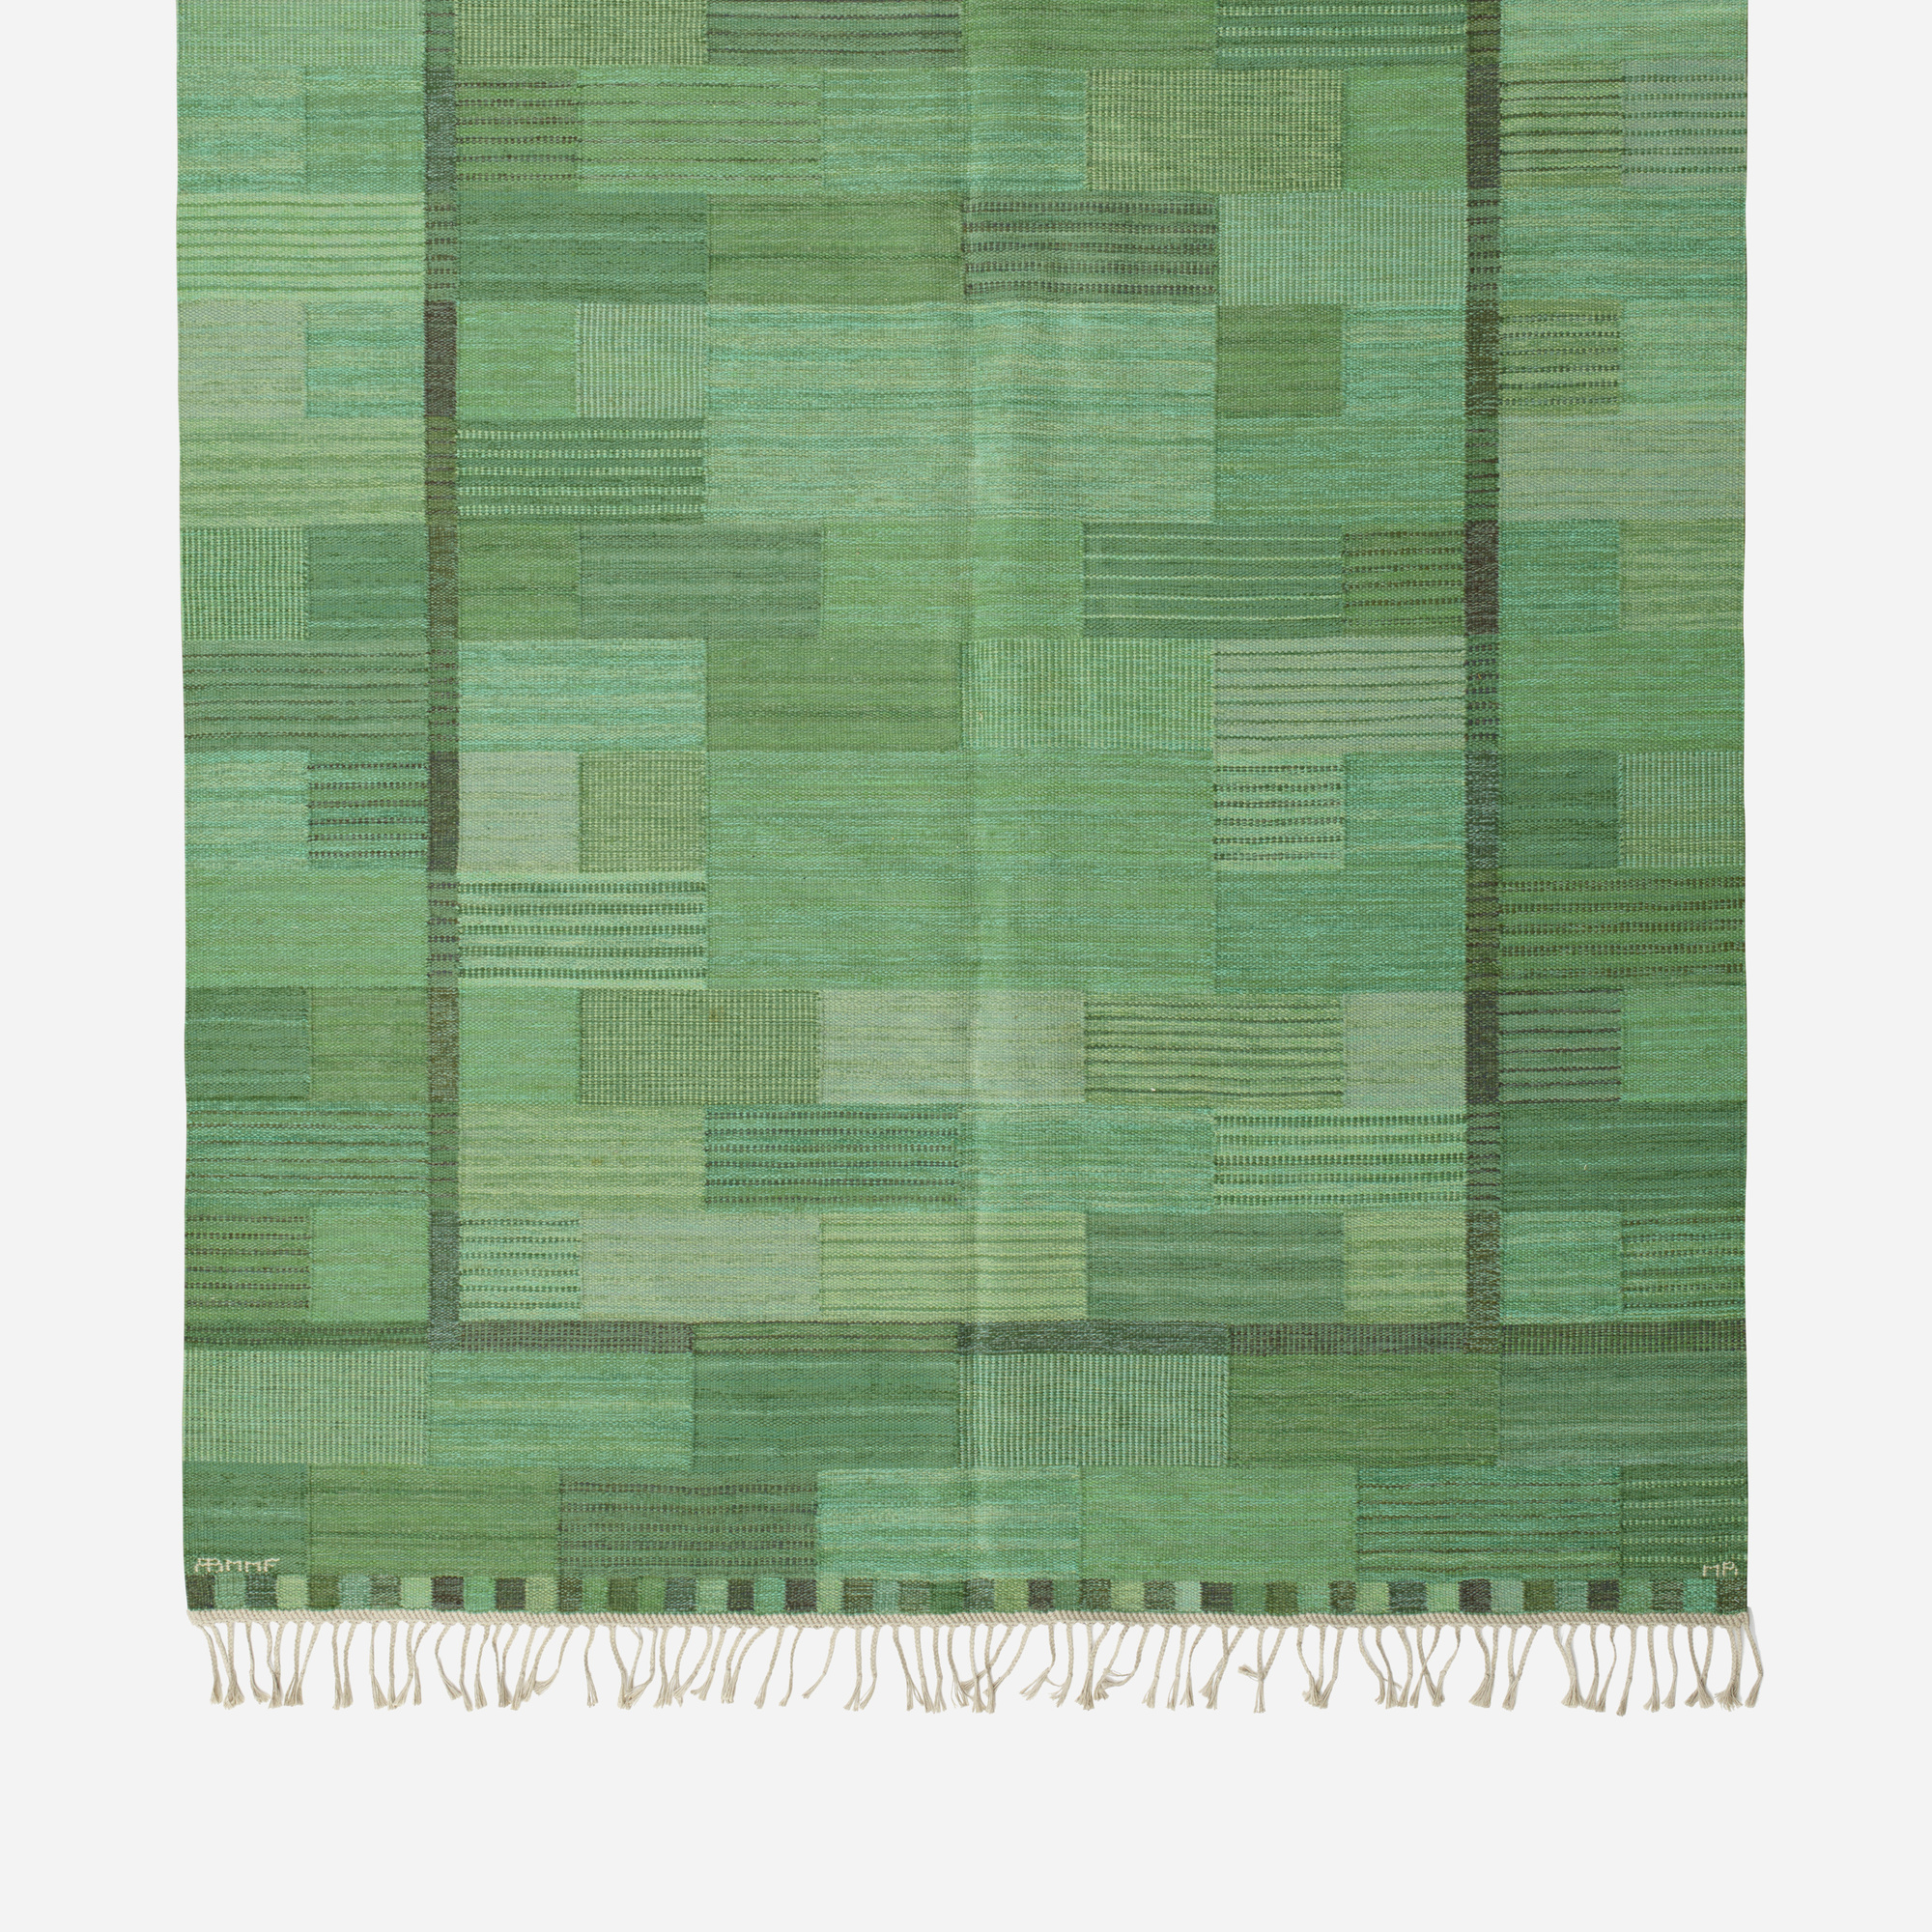 160: Marianne Richter / Fasad flatweave carpet (2 of 2)